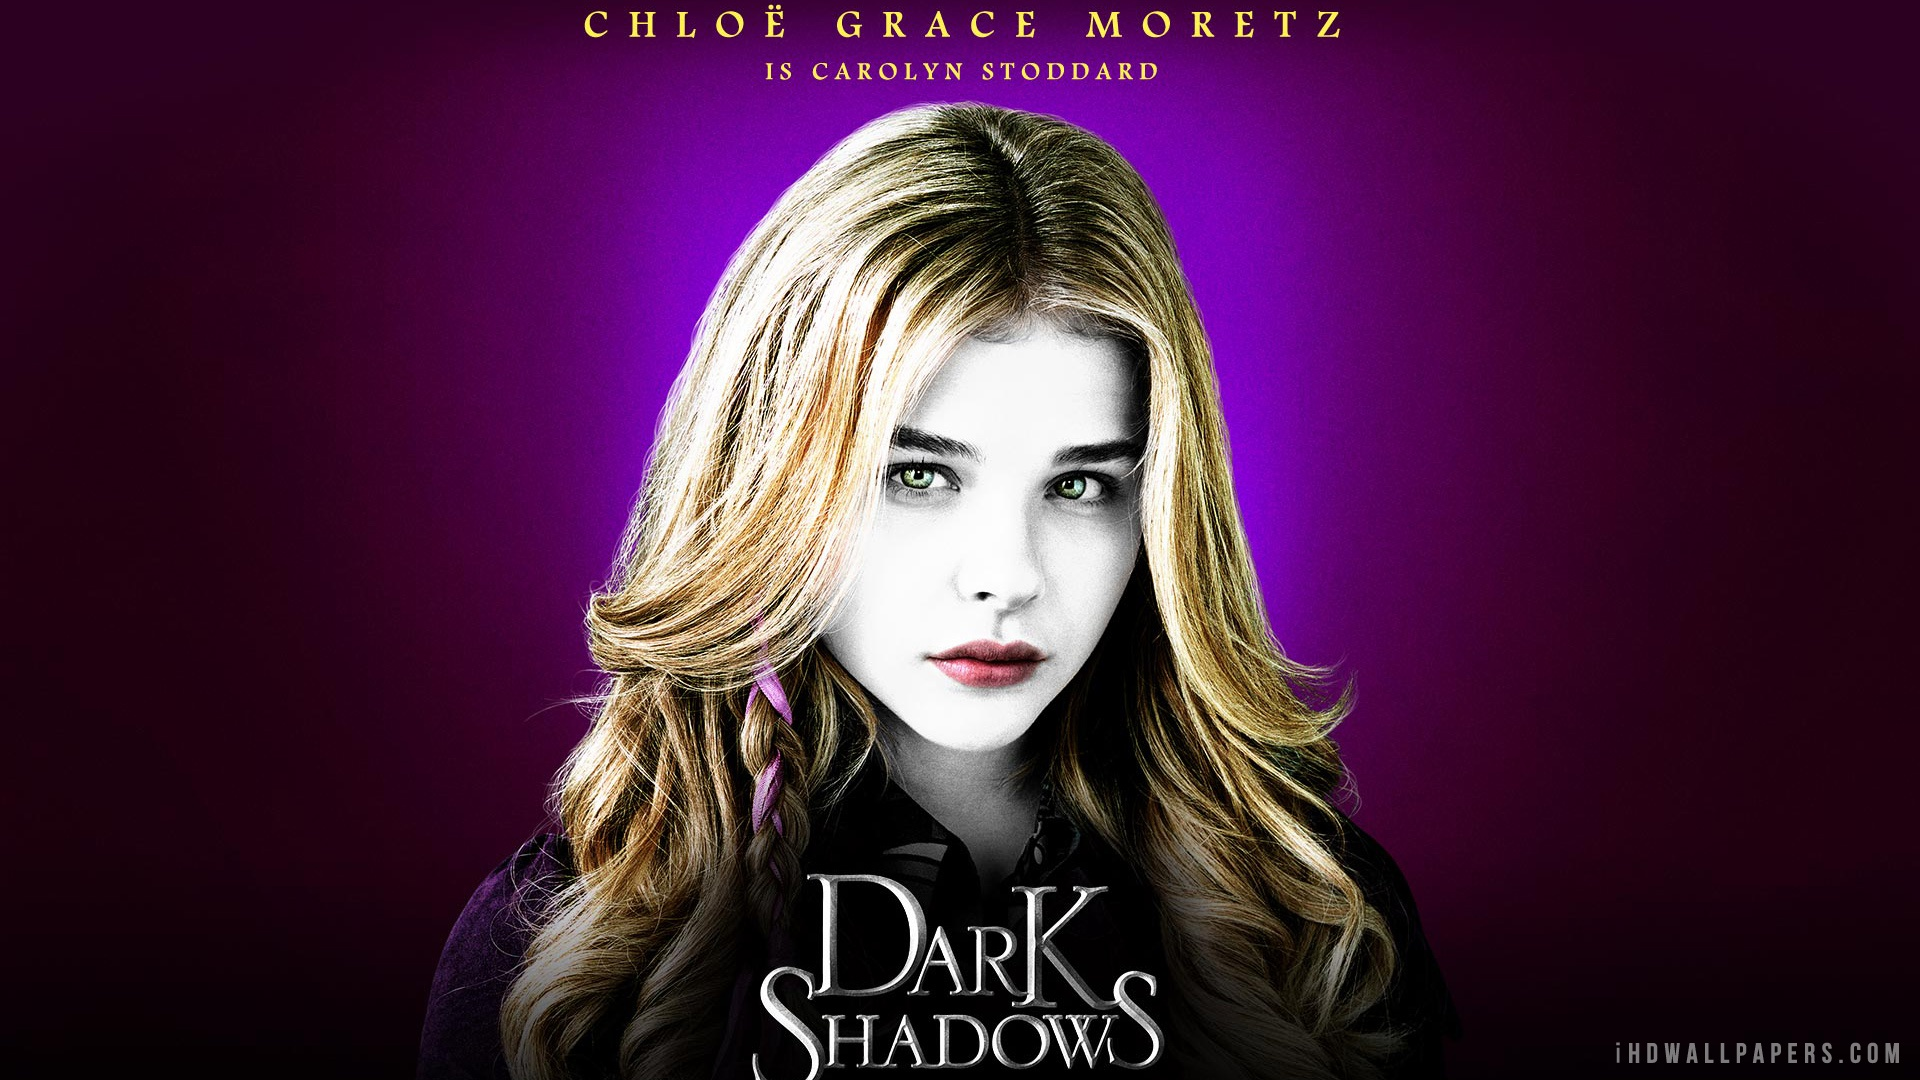 Chloe Moretz in Dark Shadows HD Wallpaper   iHD Wallpapers 1920x1080